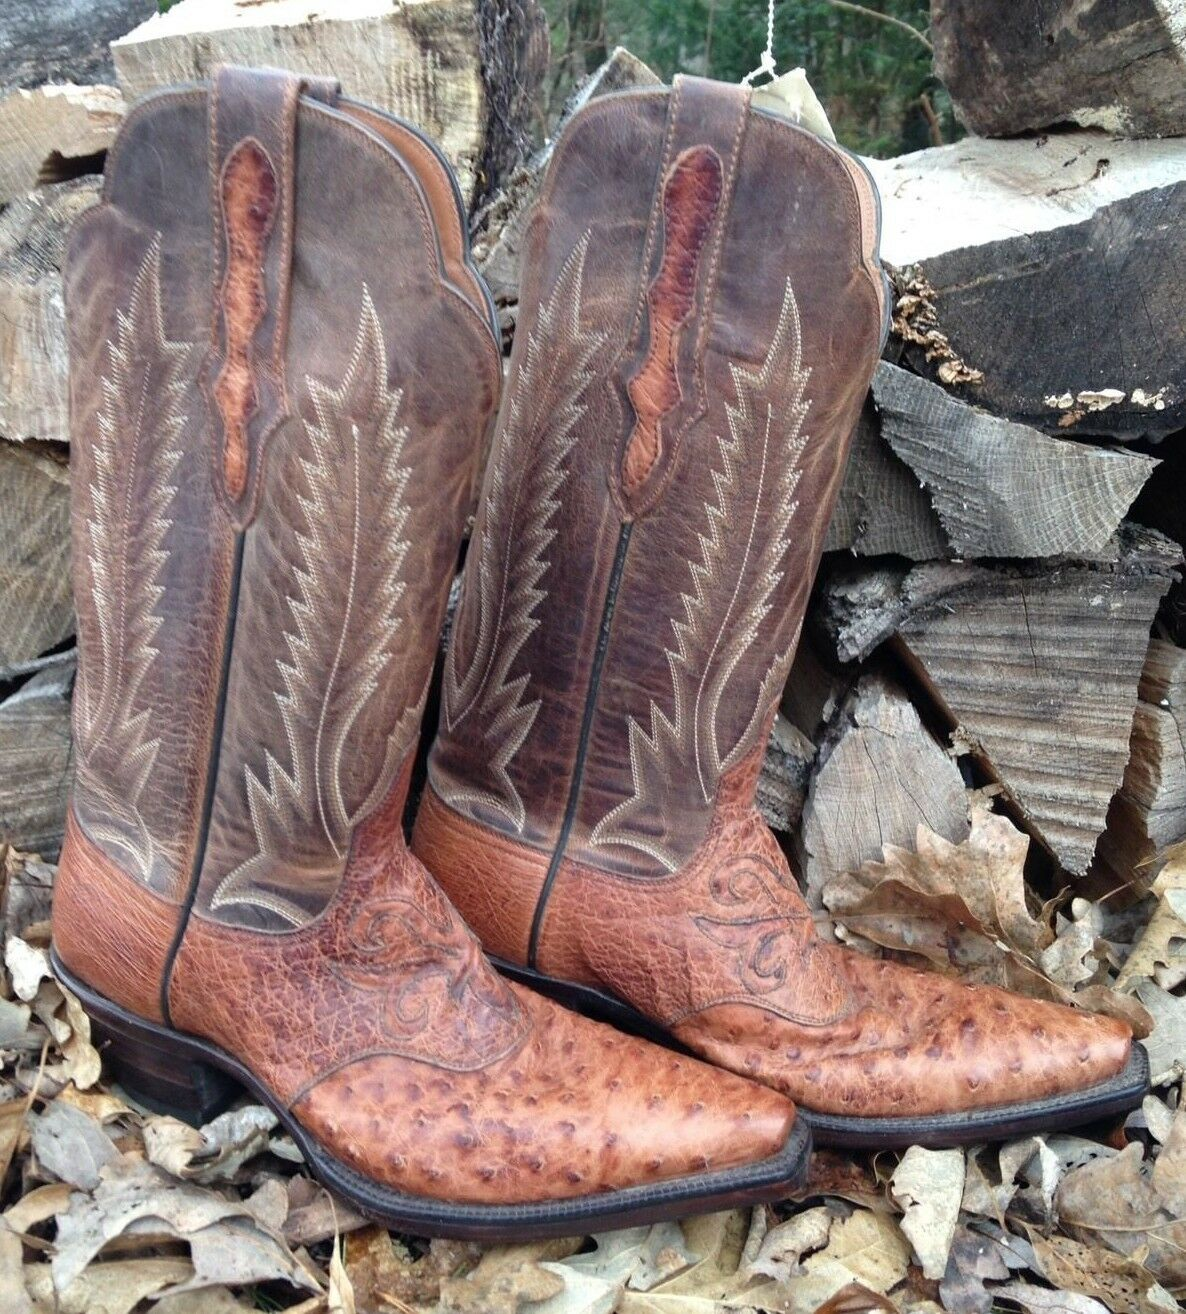 BLACK JACK Boots Size 6 Women's Full Quill Ostrich Made in USA Western Cowboy